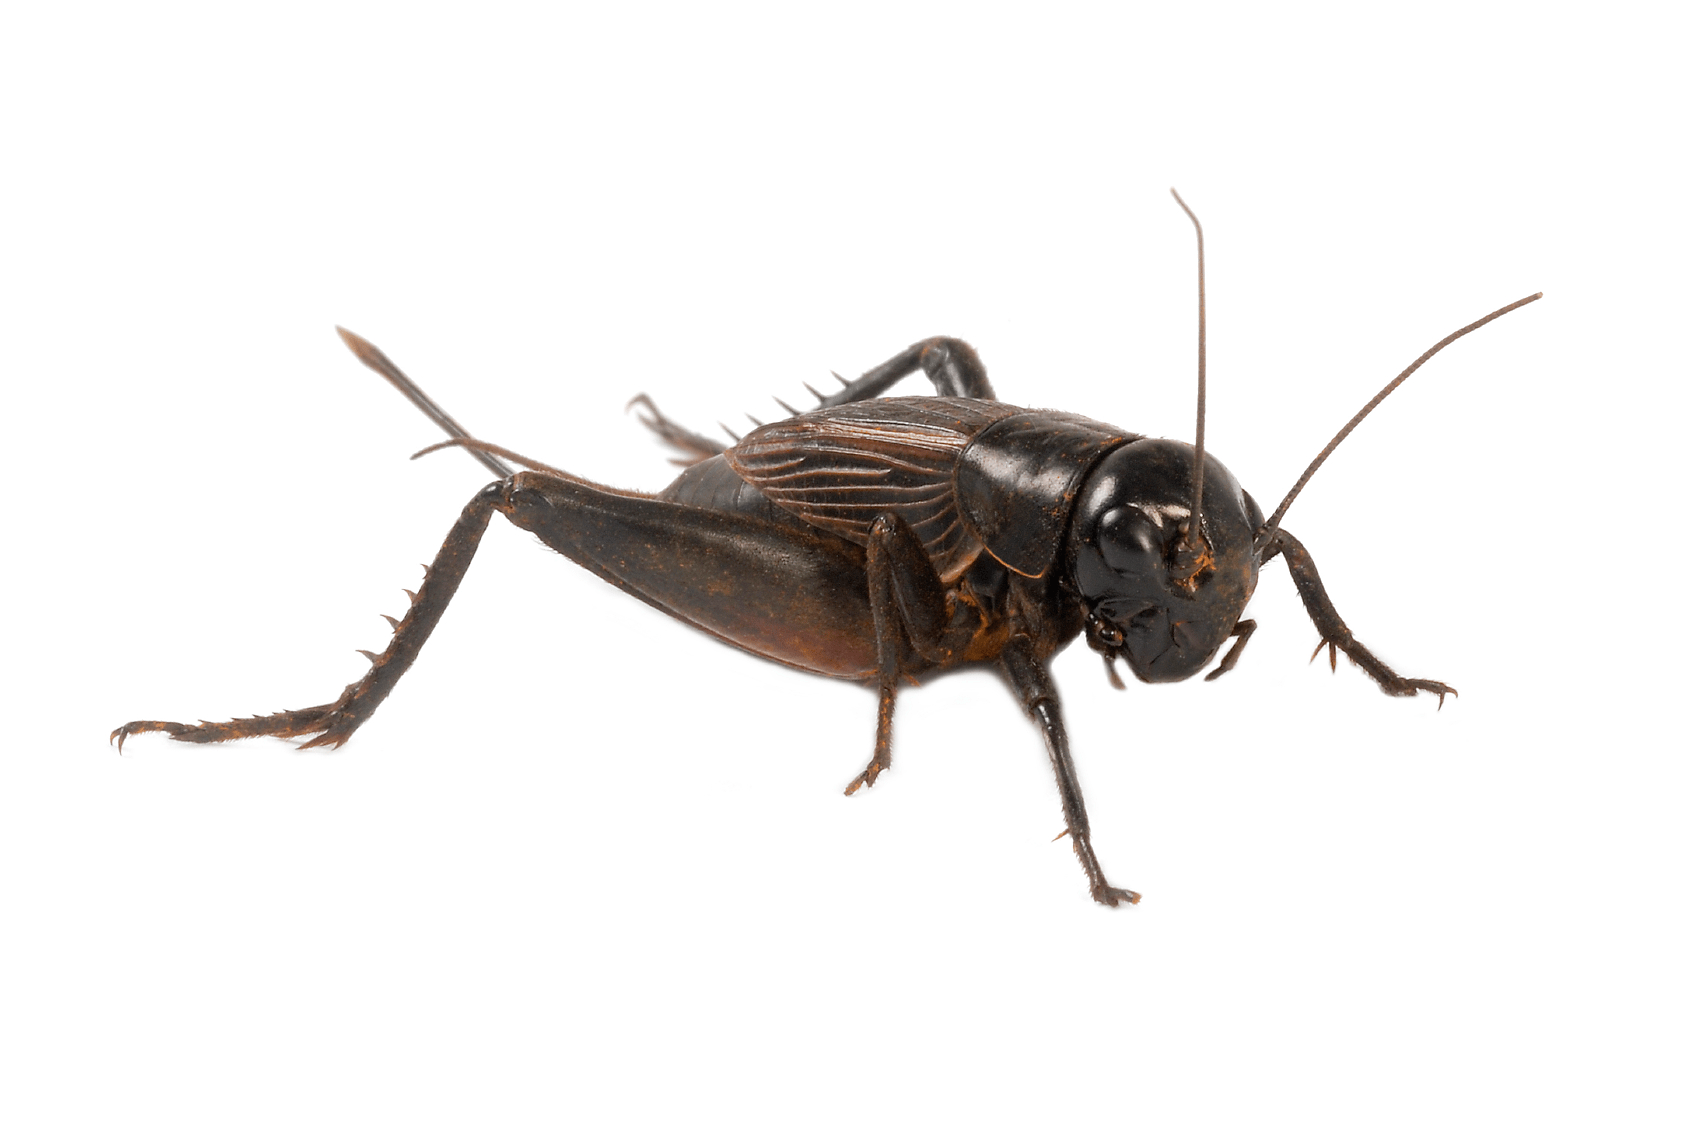 Picture of a horrible, enormous cricket